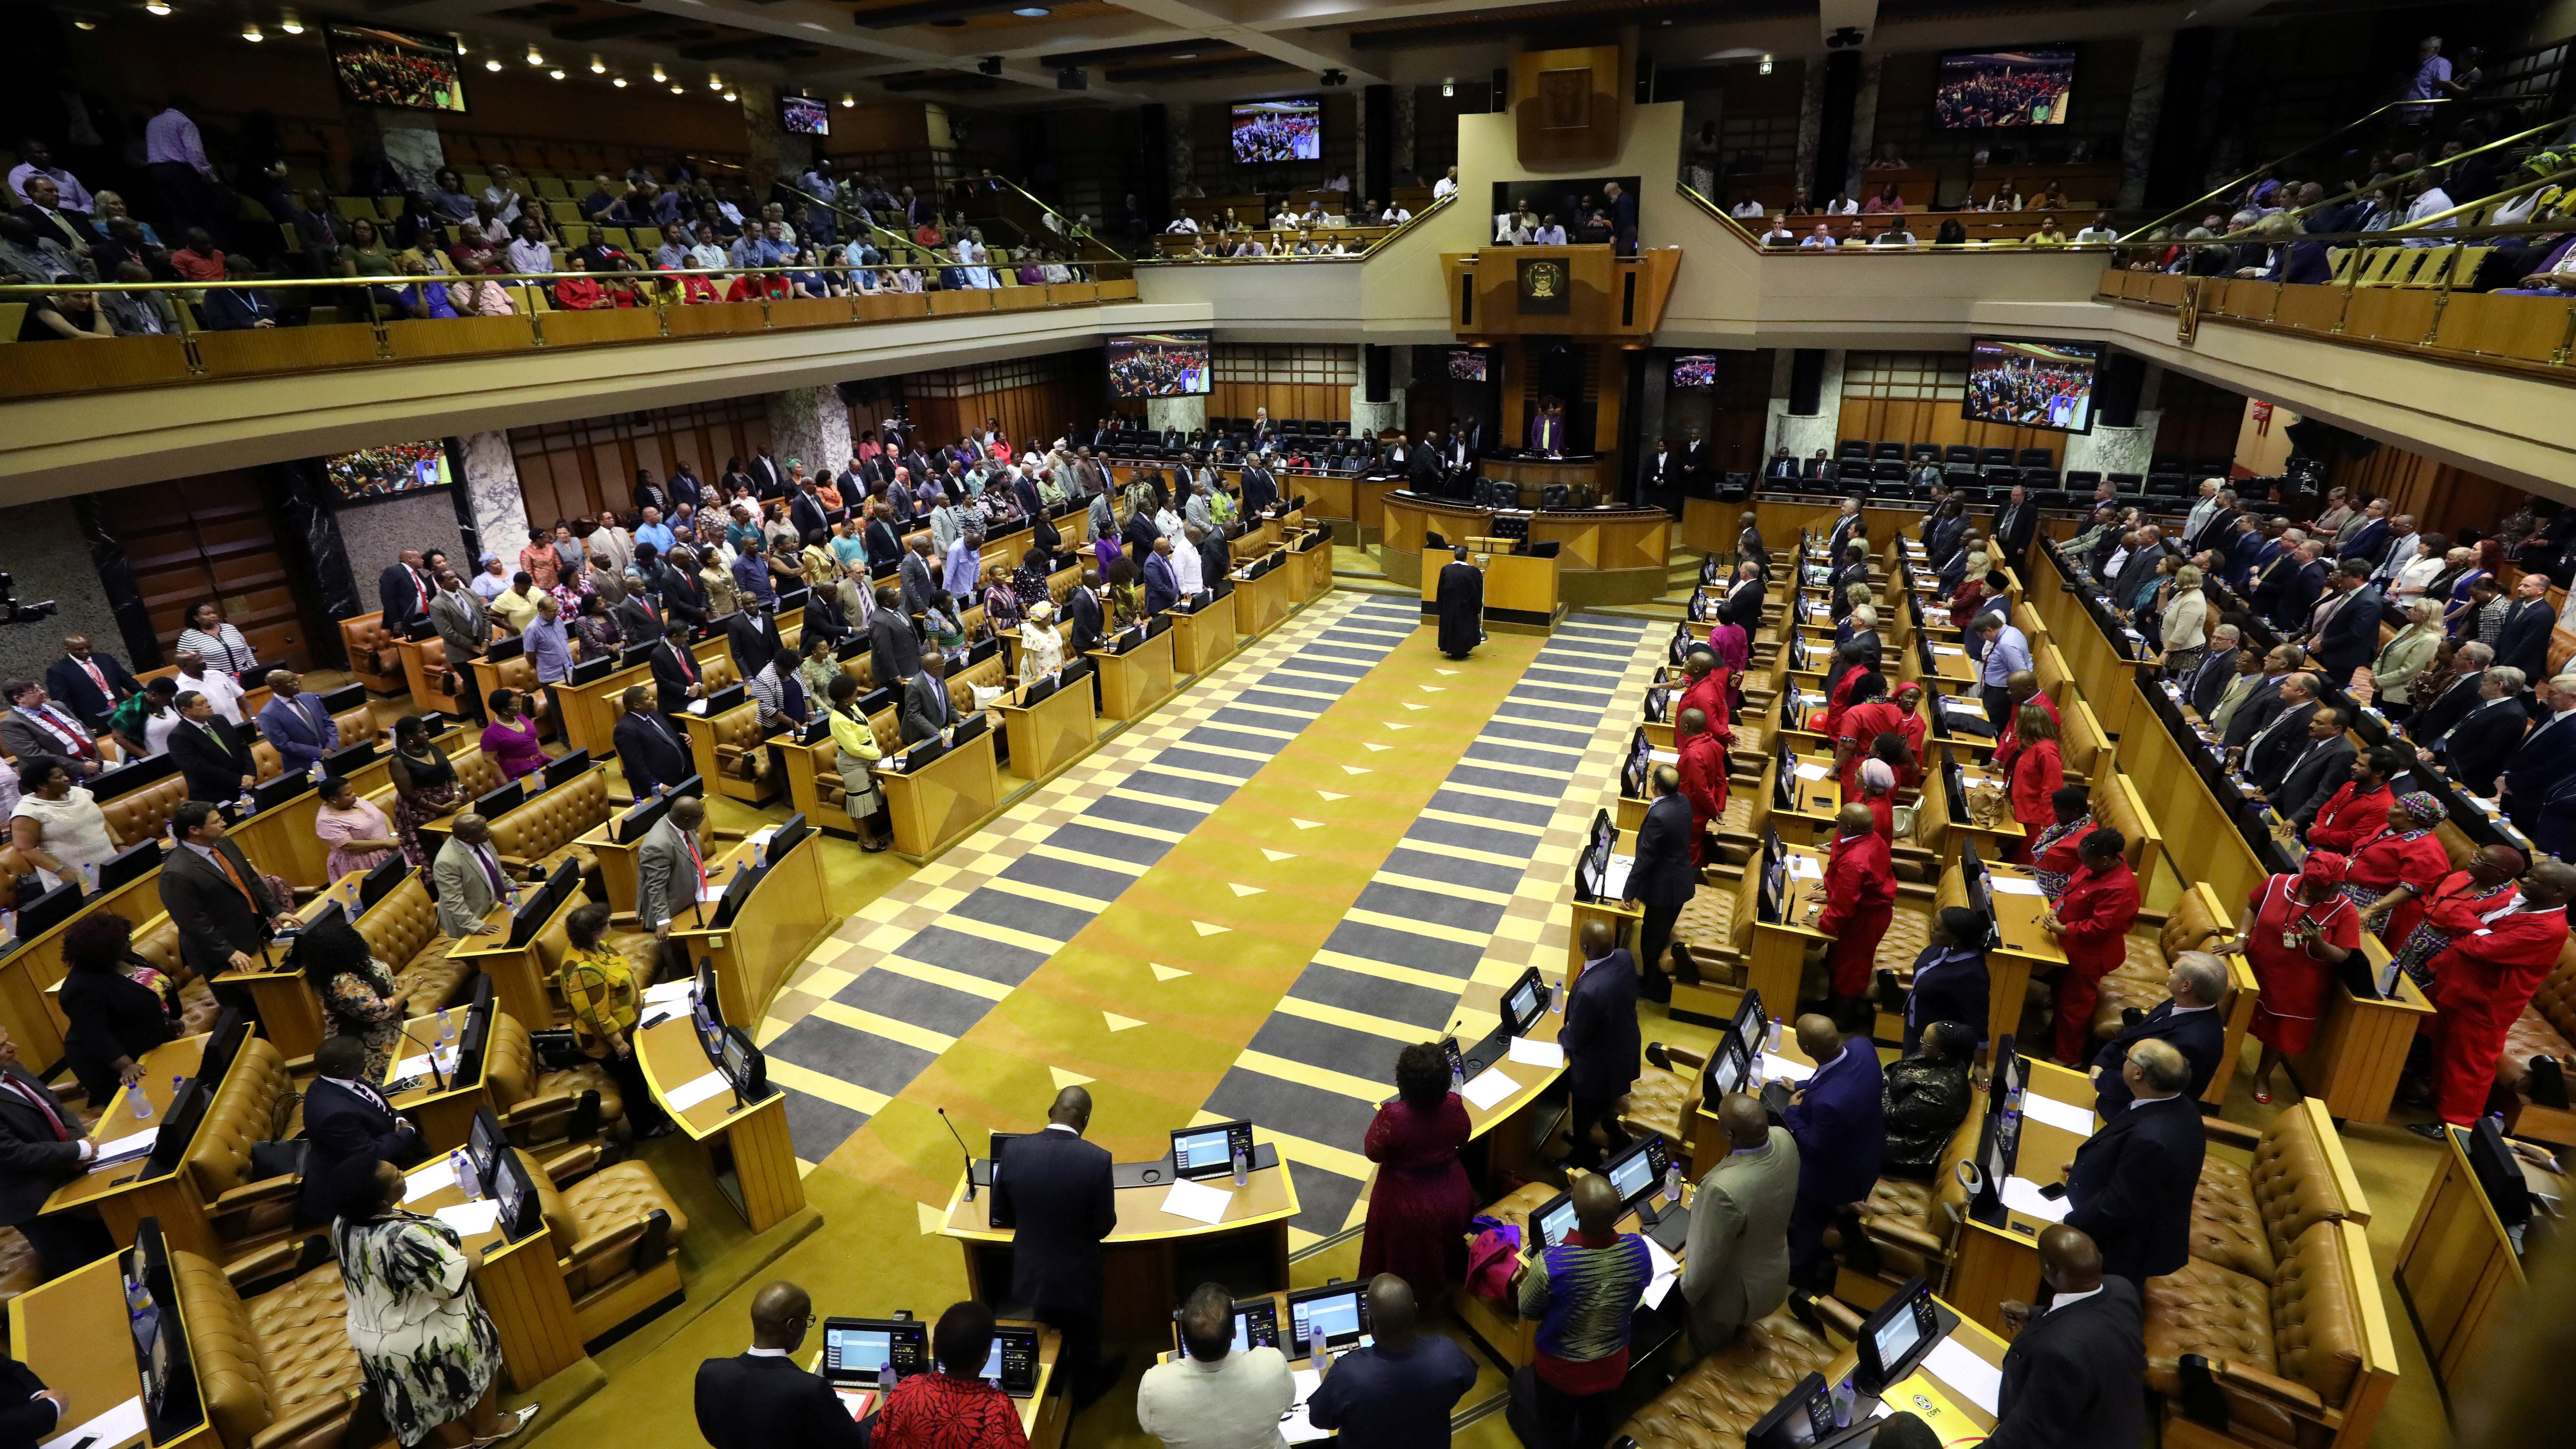 Members of parliament from a top-down view with a podium in the center